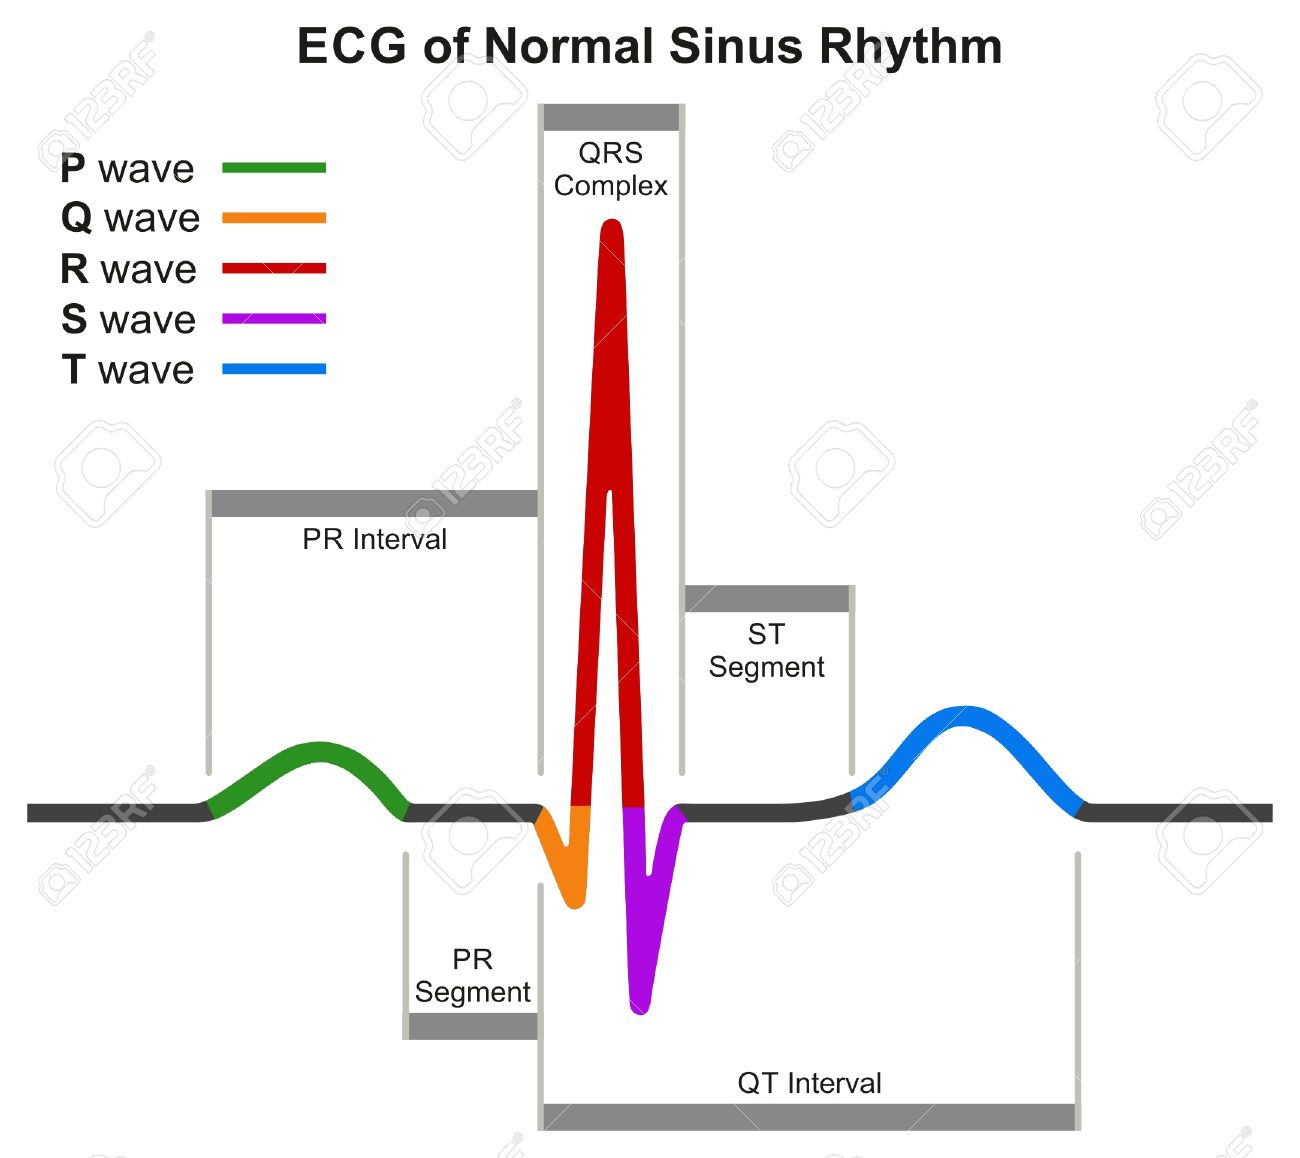 hight resolution of ecg of normal sinus rhythm infographic diagram showing normal heart beat wave including intervals segments and